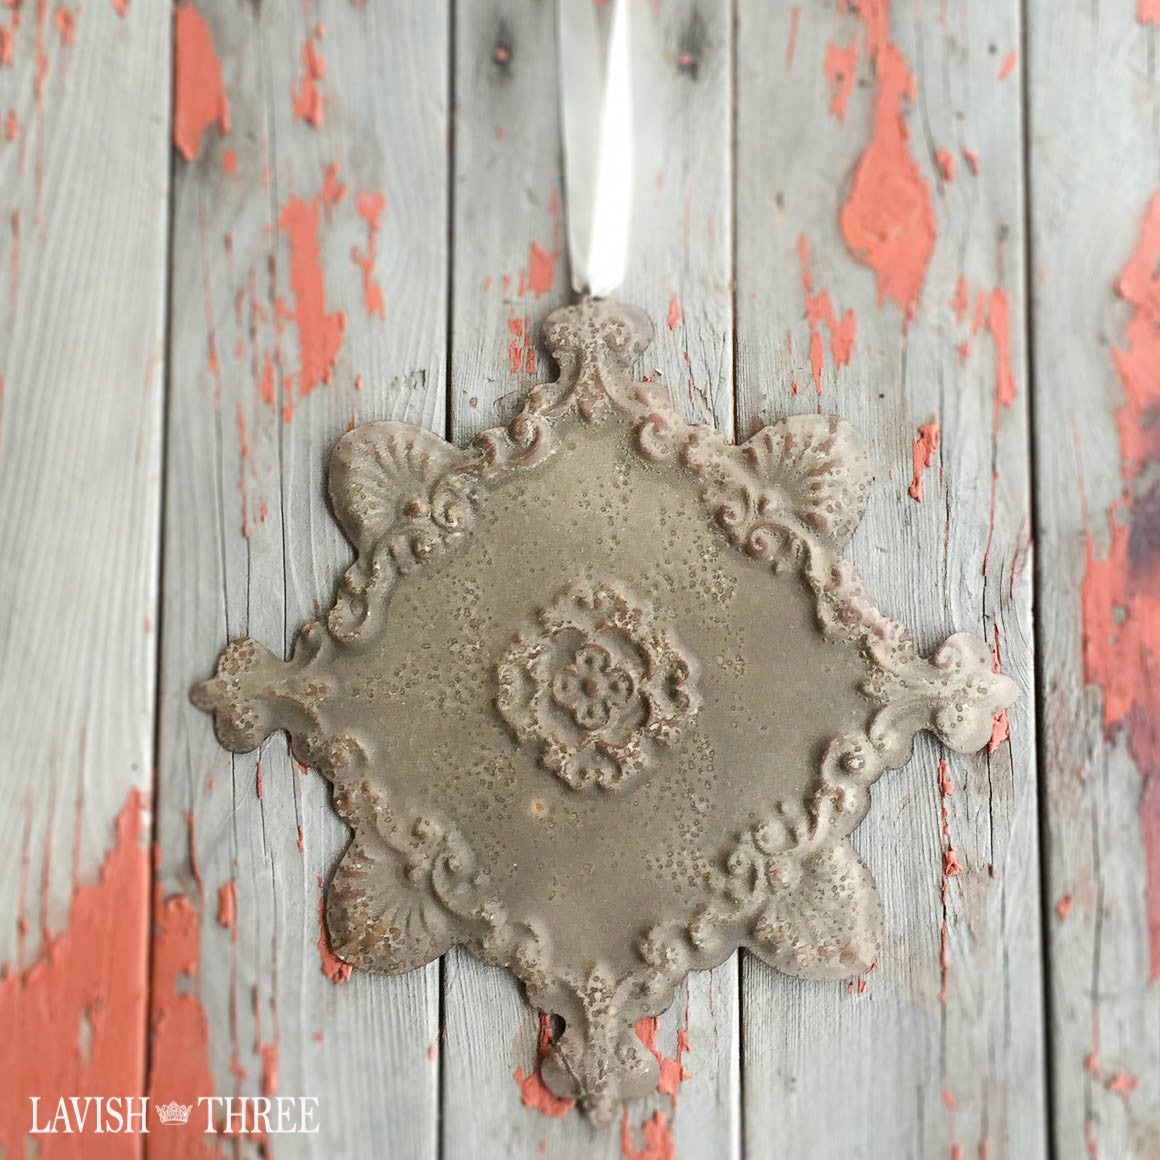 Rustic vintage shabby chic metal wall medallion with satin ribbon bronze